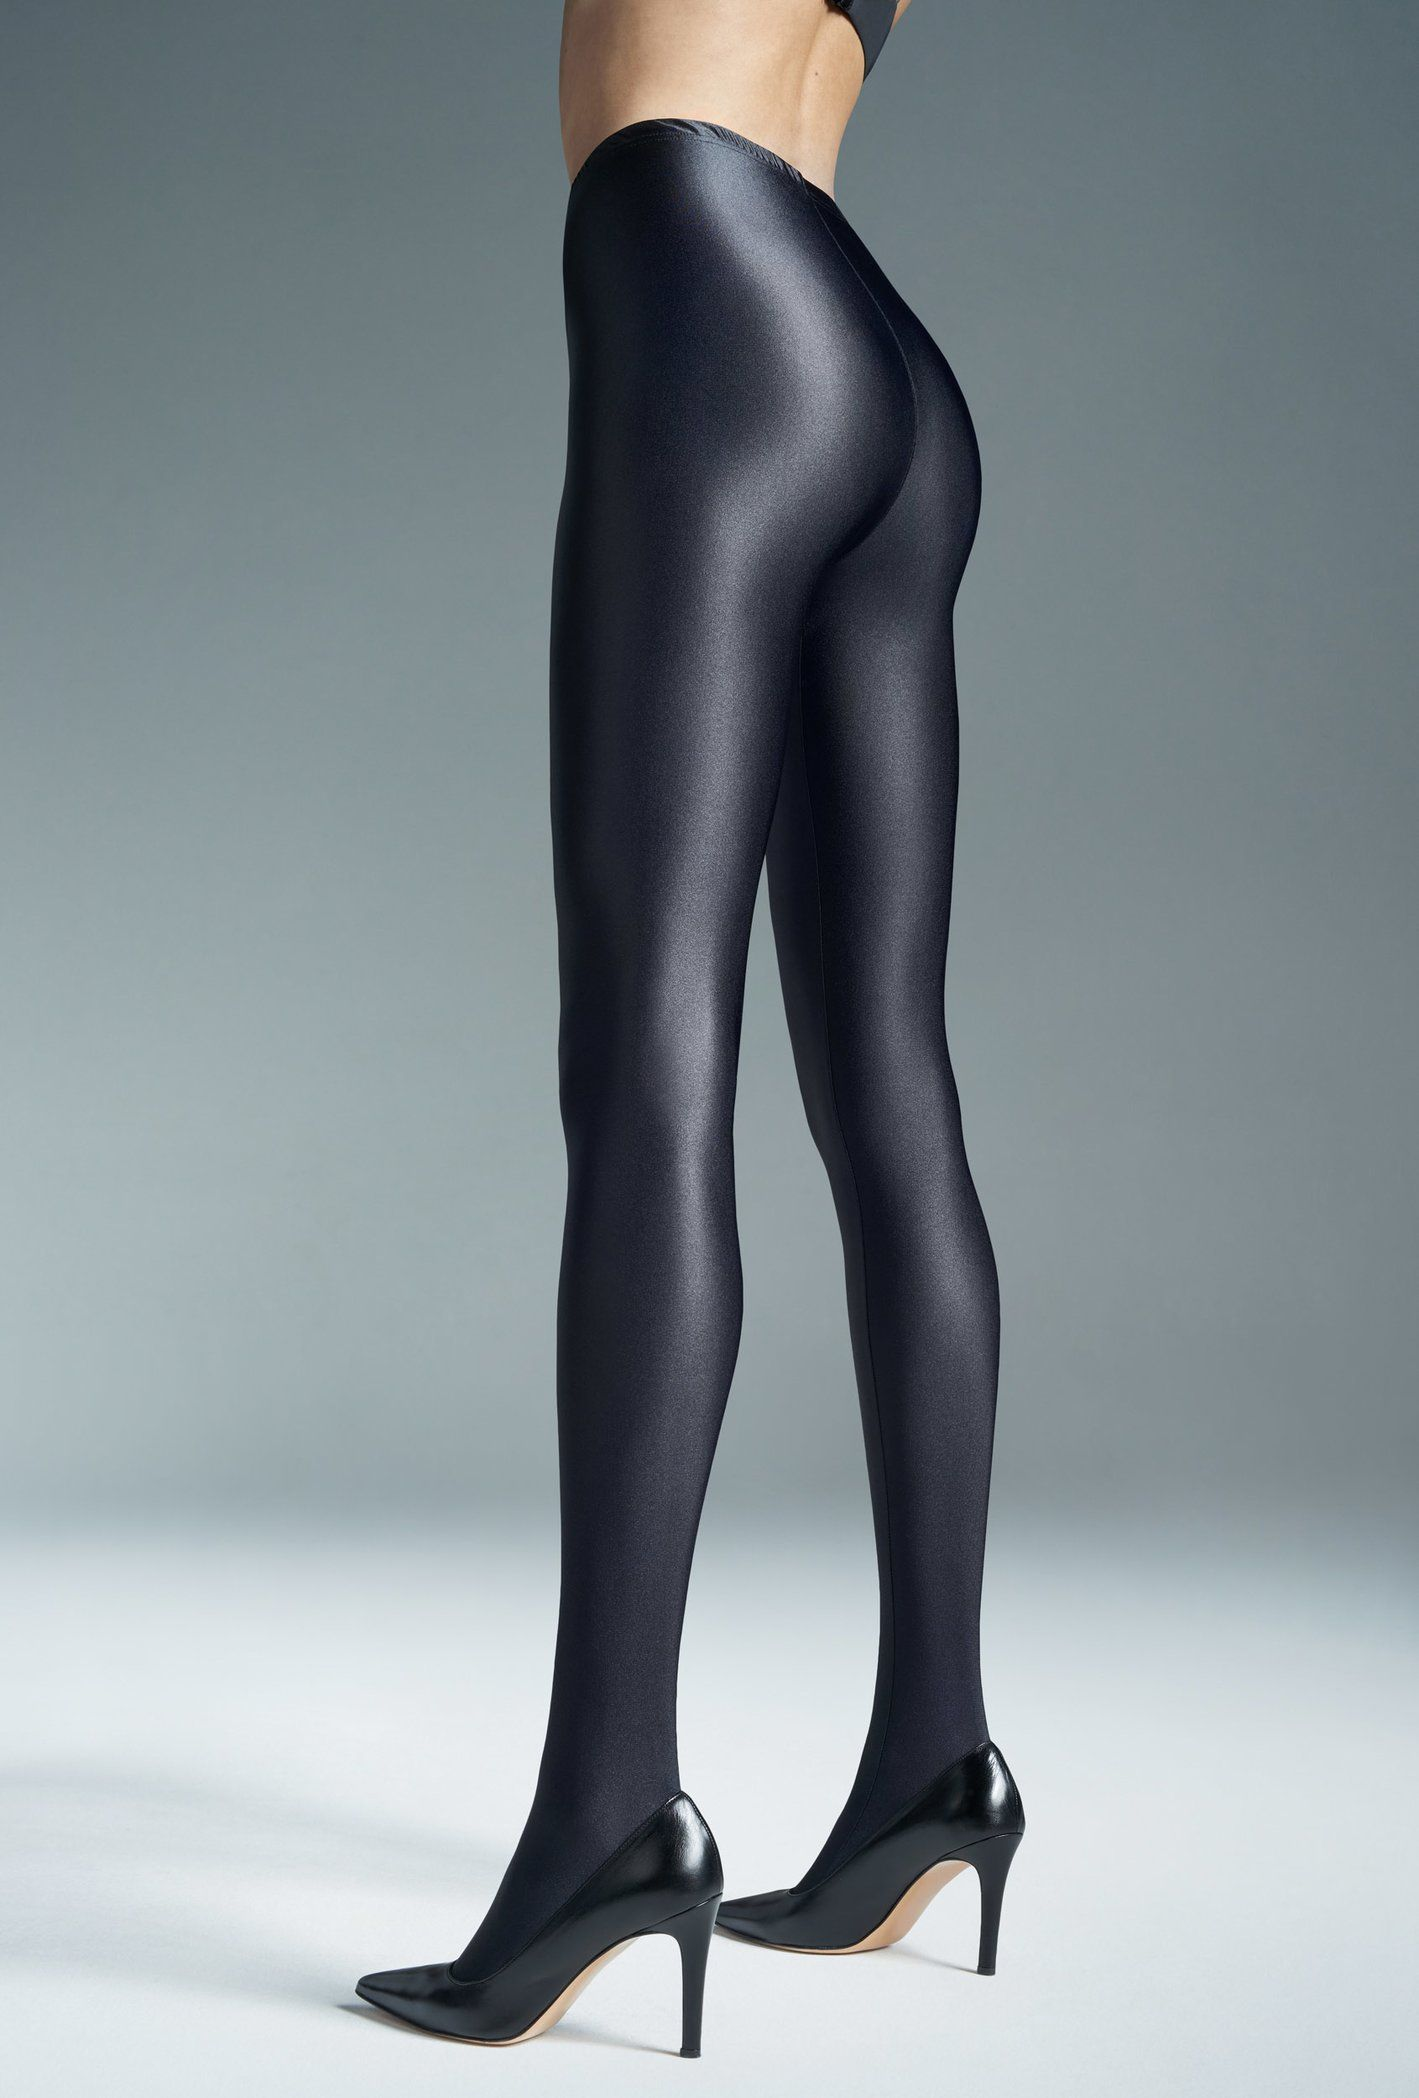 ffda34963a220 Mantyhose Çorap Gatta Black Brillant High Gloss Tights | Things to ...